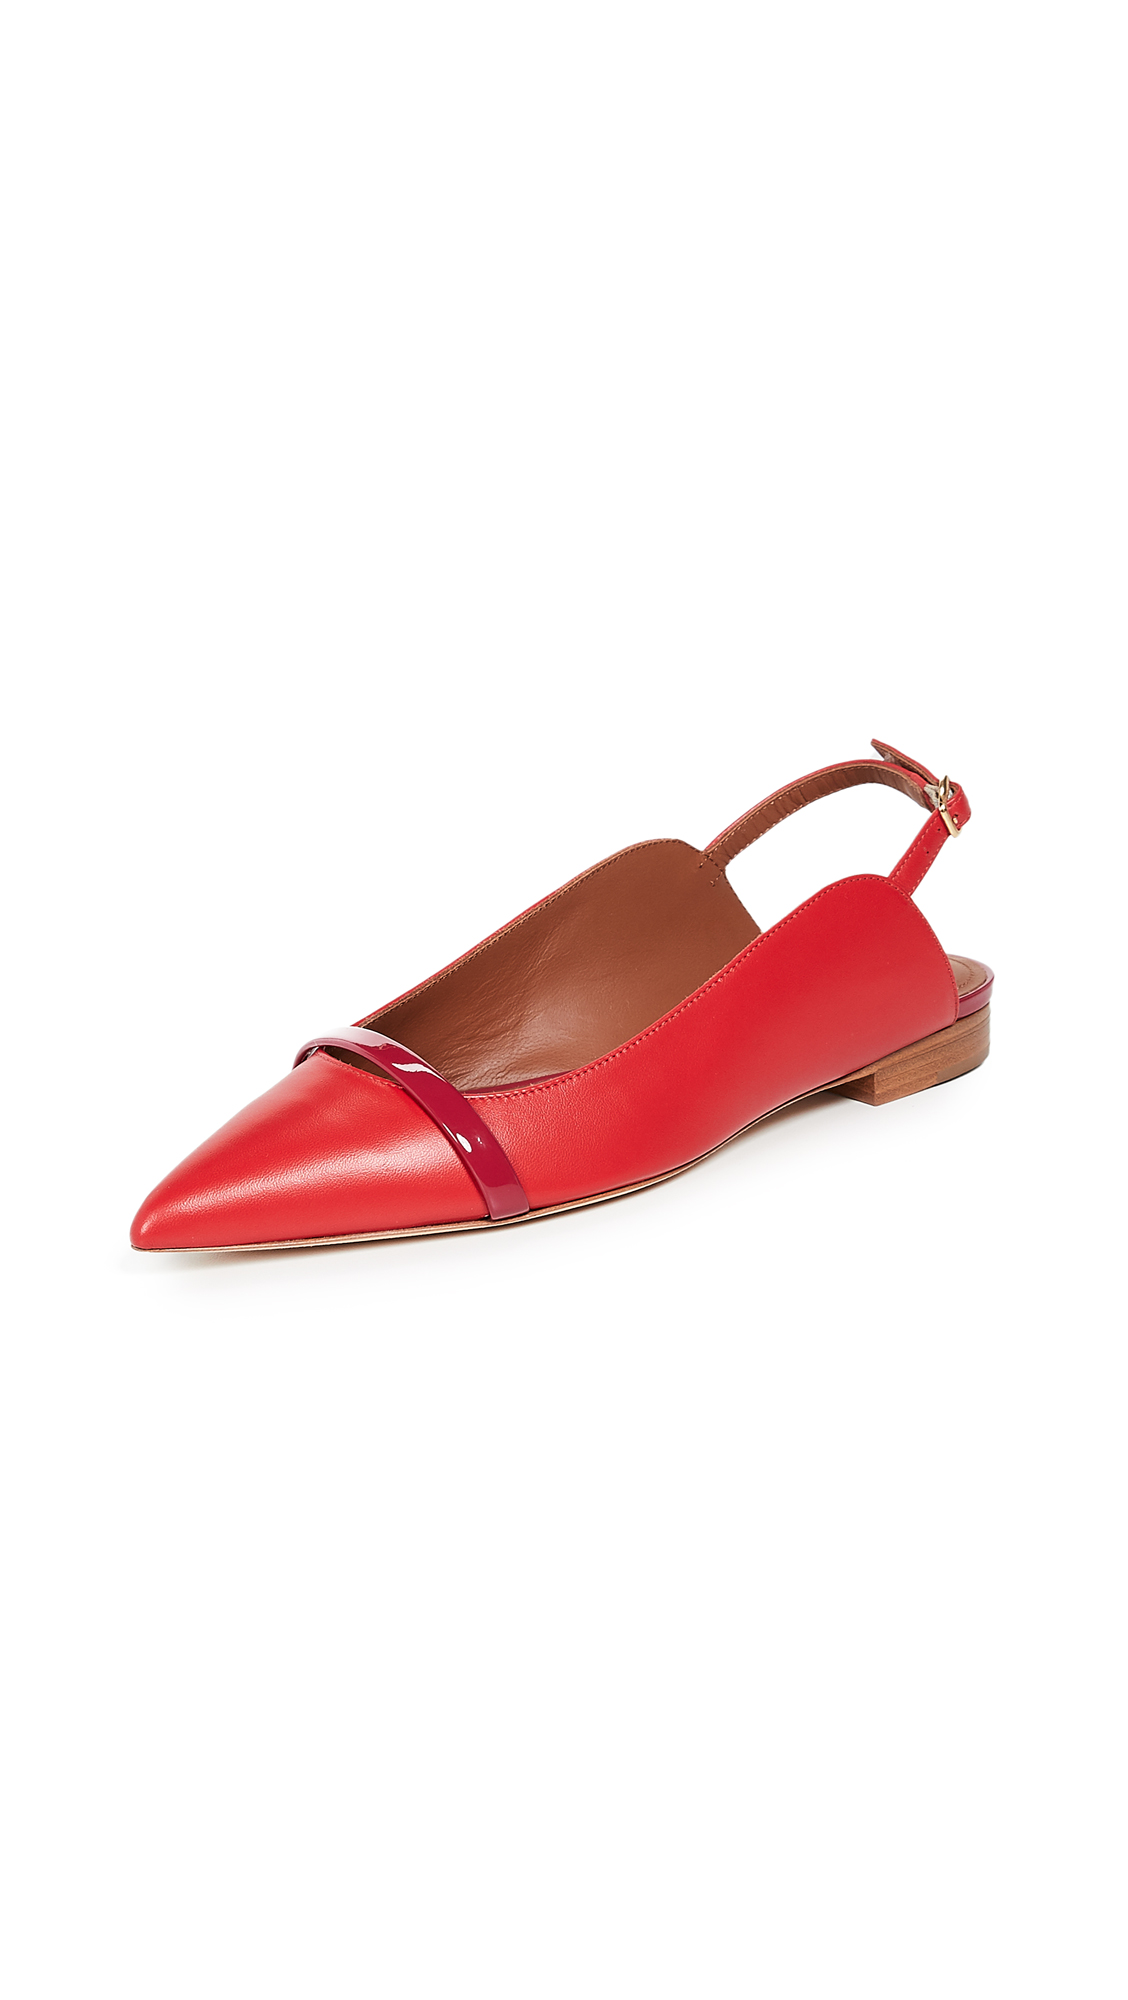 Malone Souliers Marion Slingback Flats - Red/Red